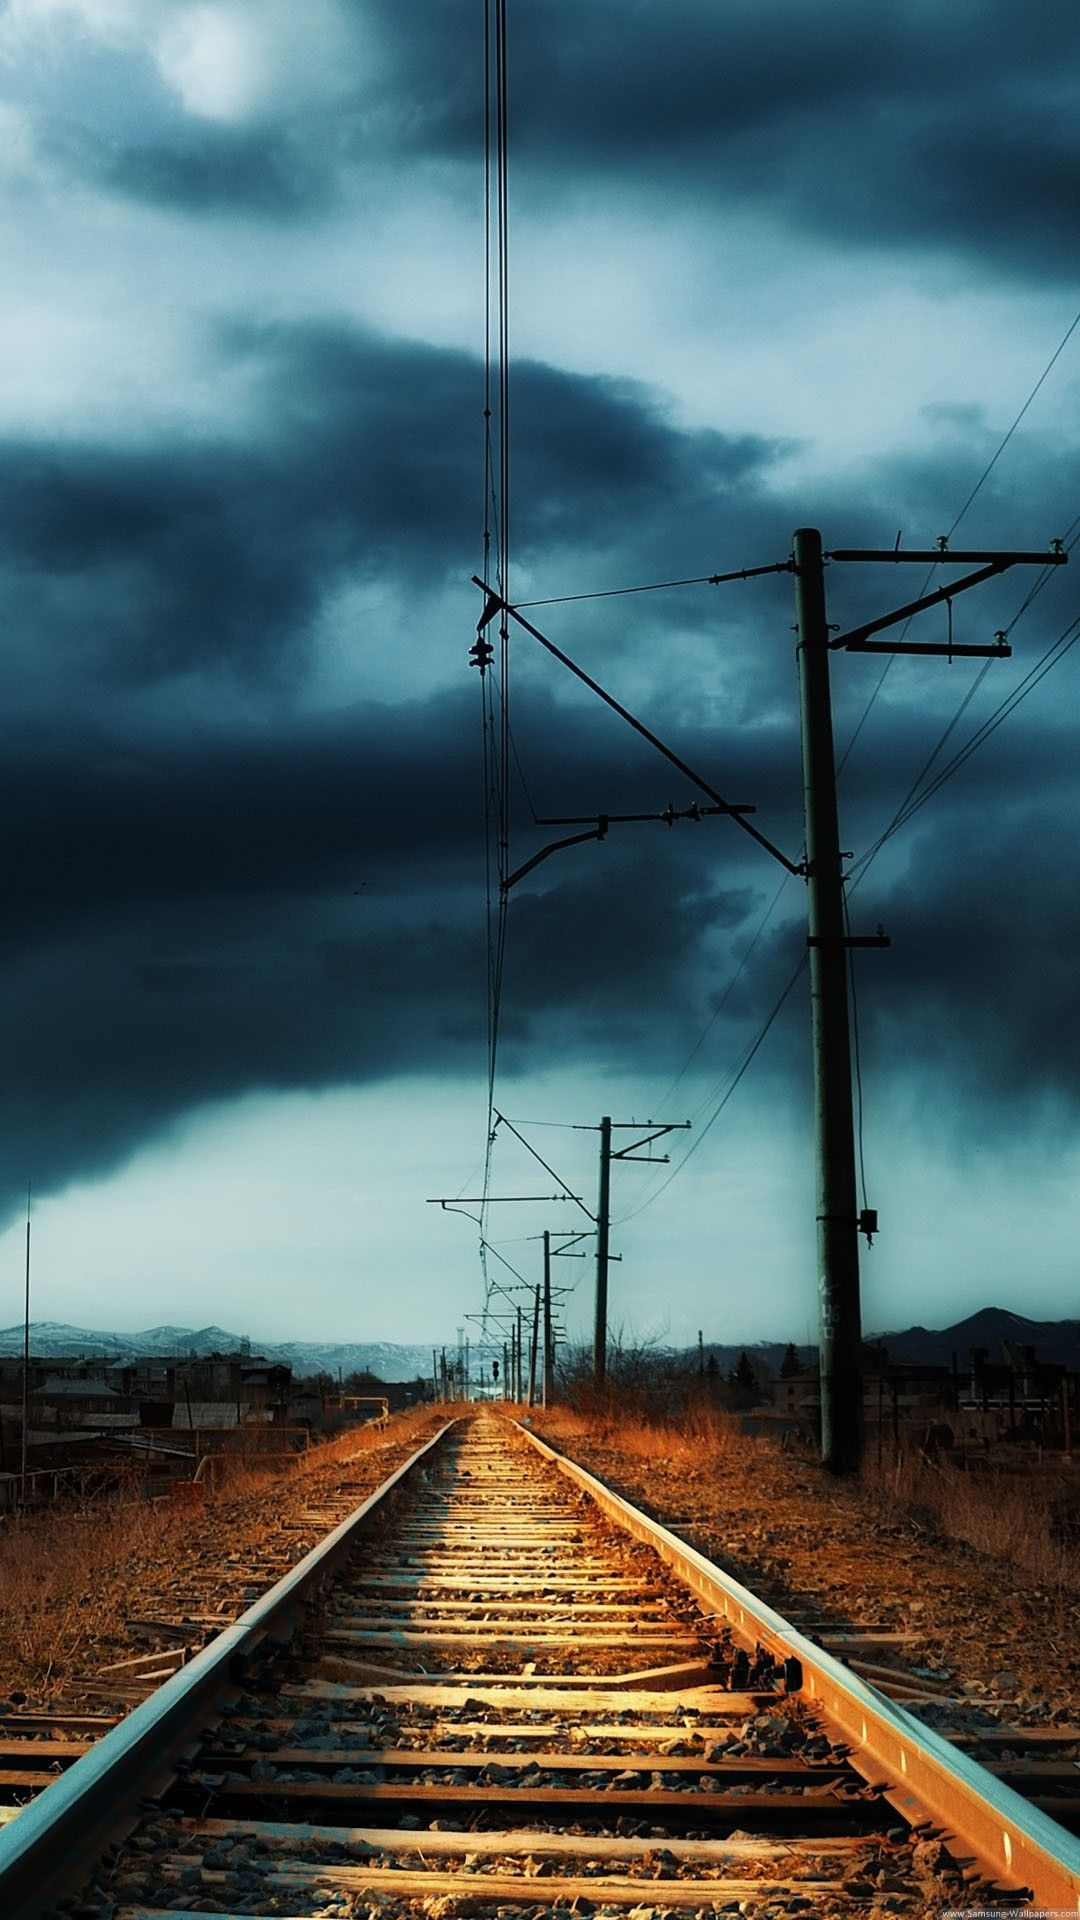 Countryside Railway Storm 4k Hd Android And Iphone Wallpaper Background And Lockscreen Samsung Galaxy Wallpaper Cool Lock Screen Wallpaper Landscape Wallpaper